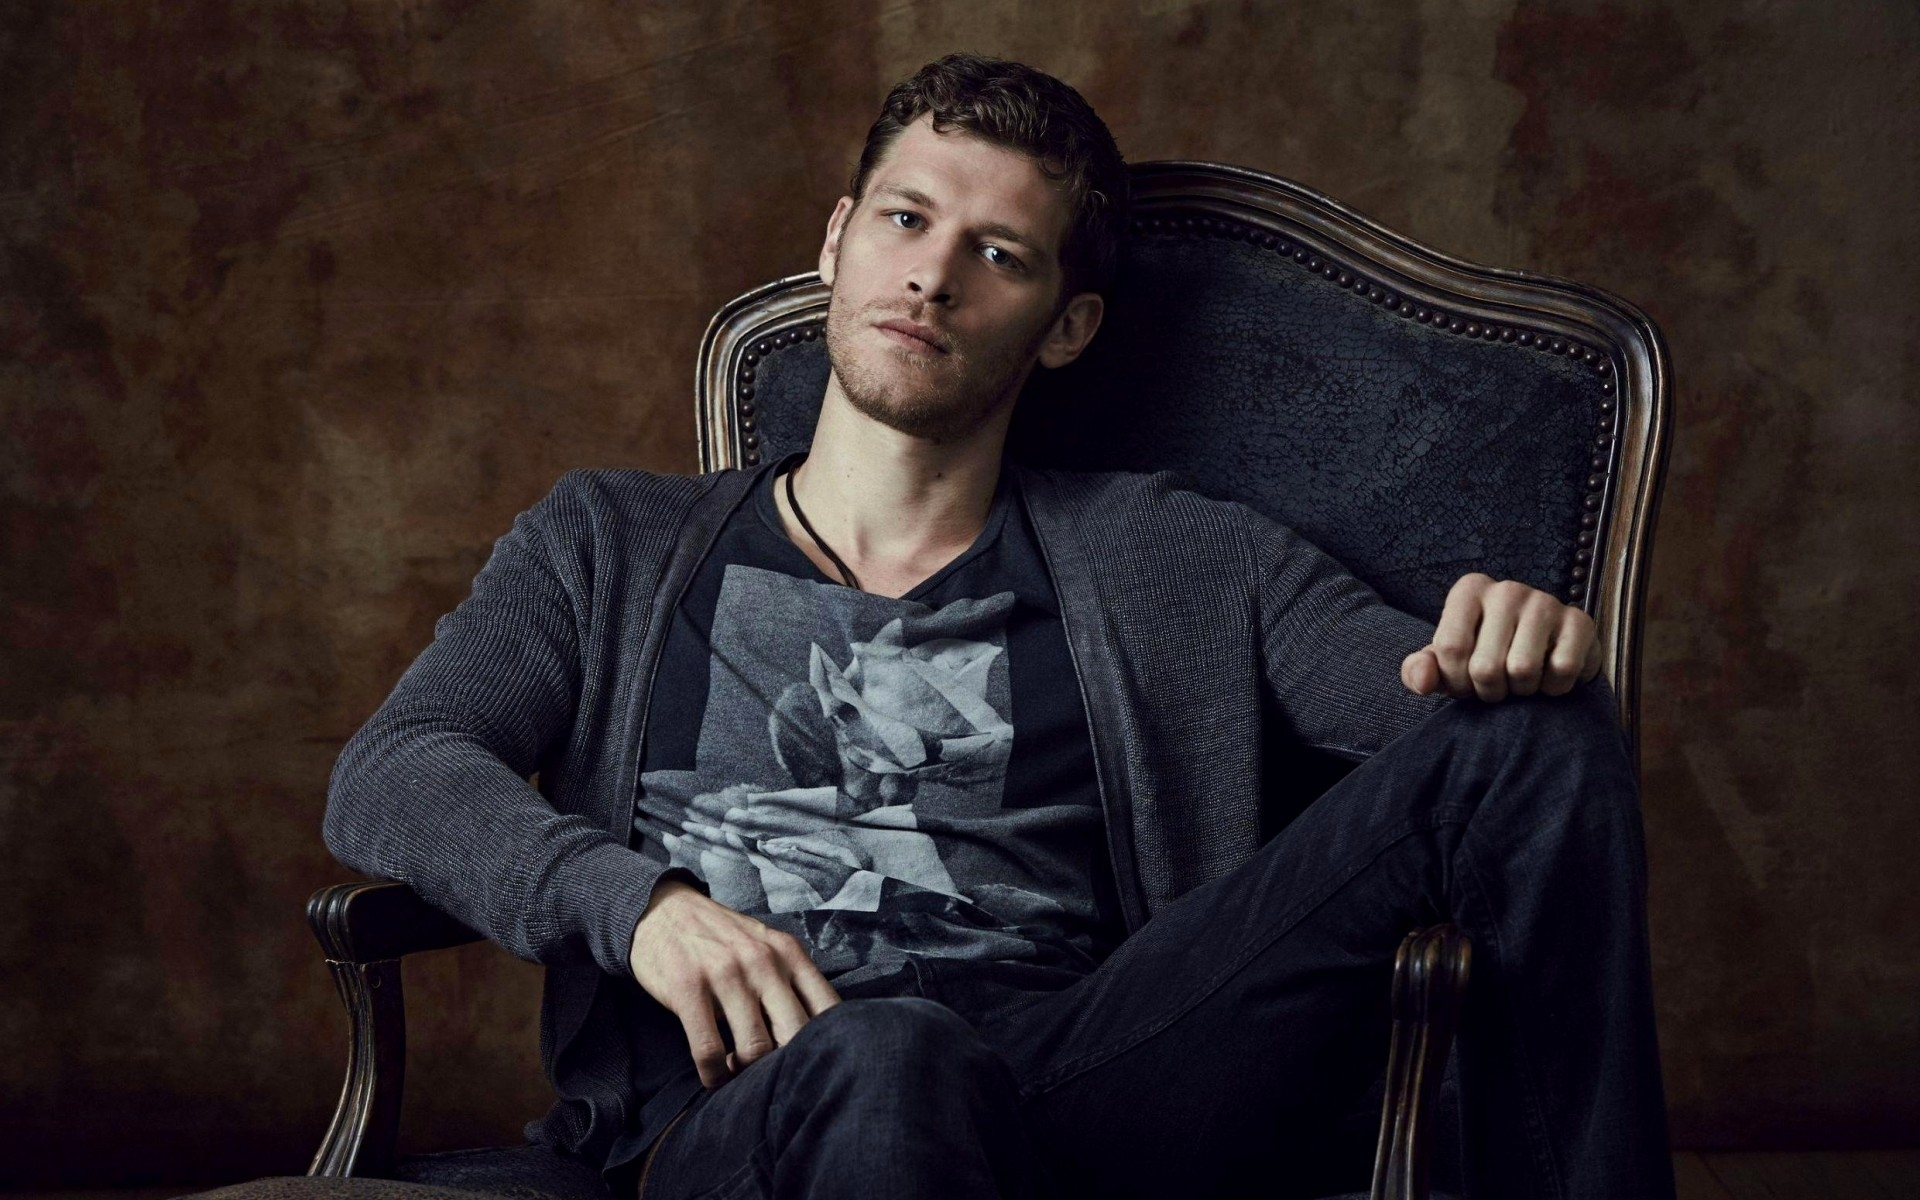 Joseph Morgan Full Hd Wallpaper And Background Image